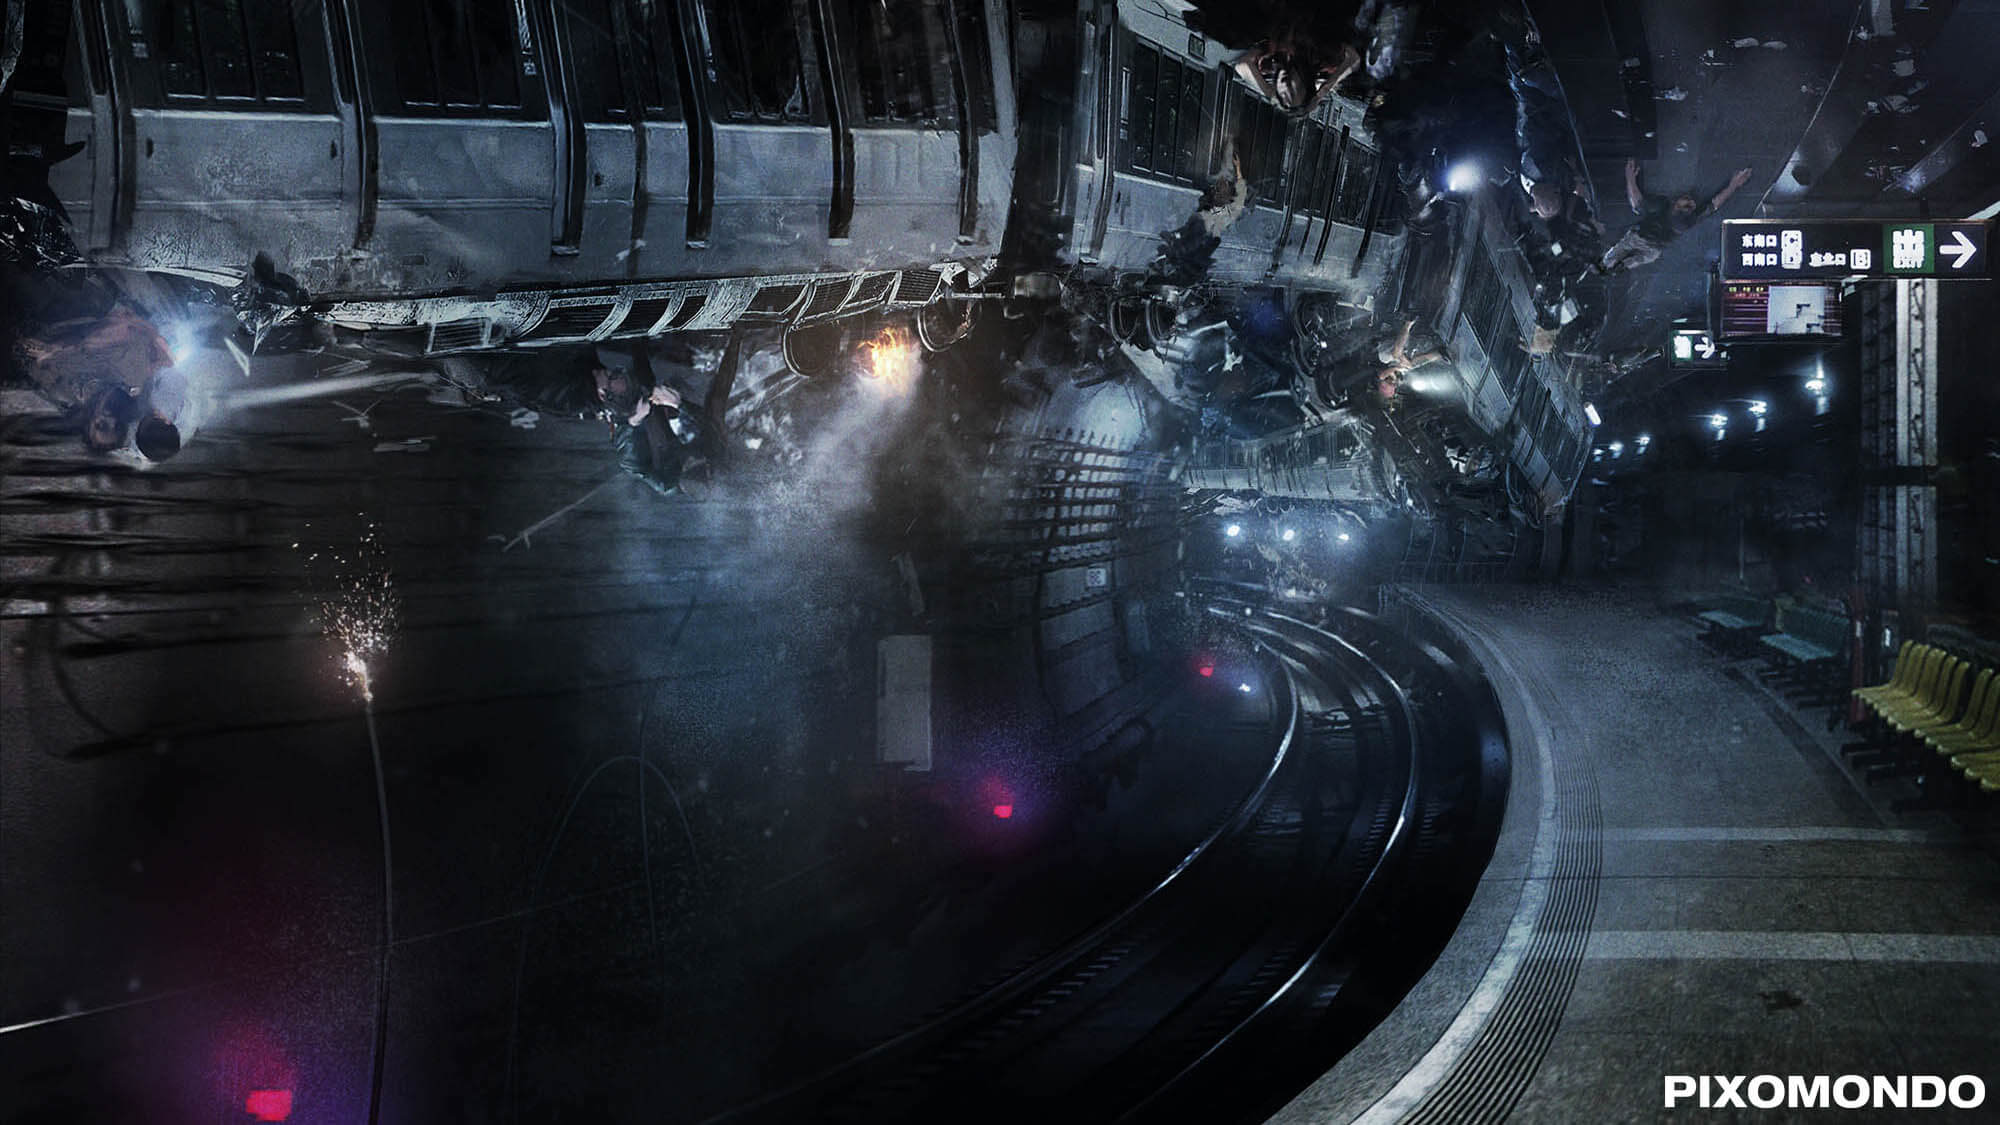 inversion-concept-art-pixomodo-felix-botho-haas-subway-scene